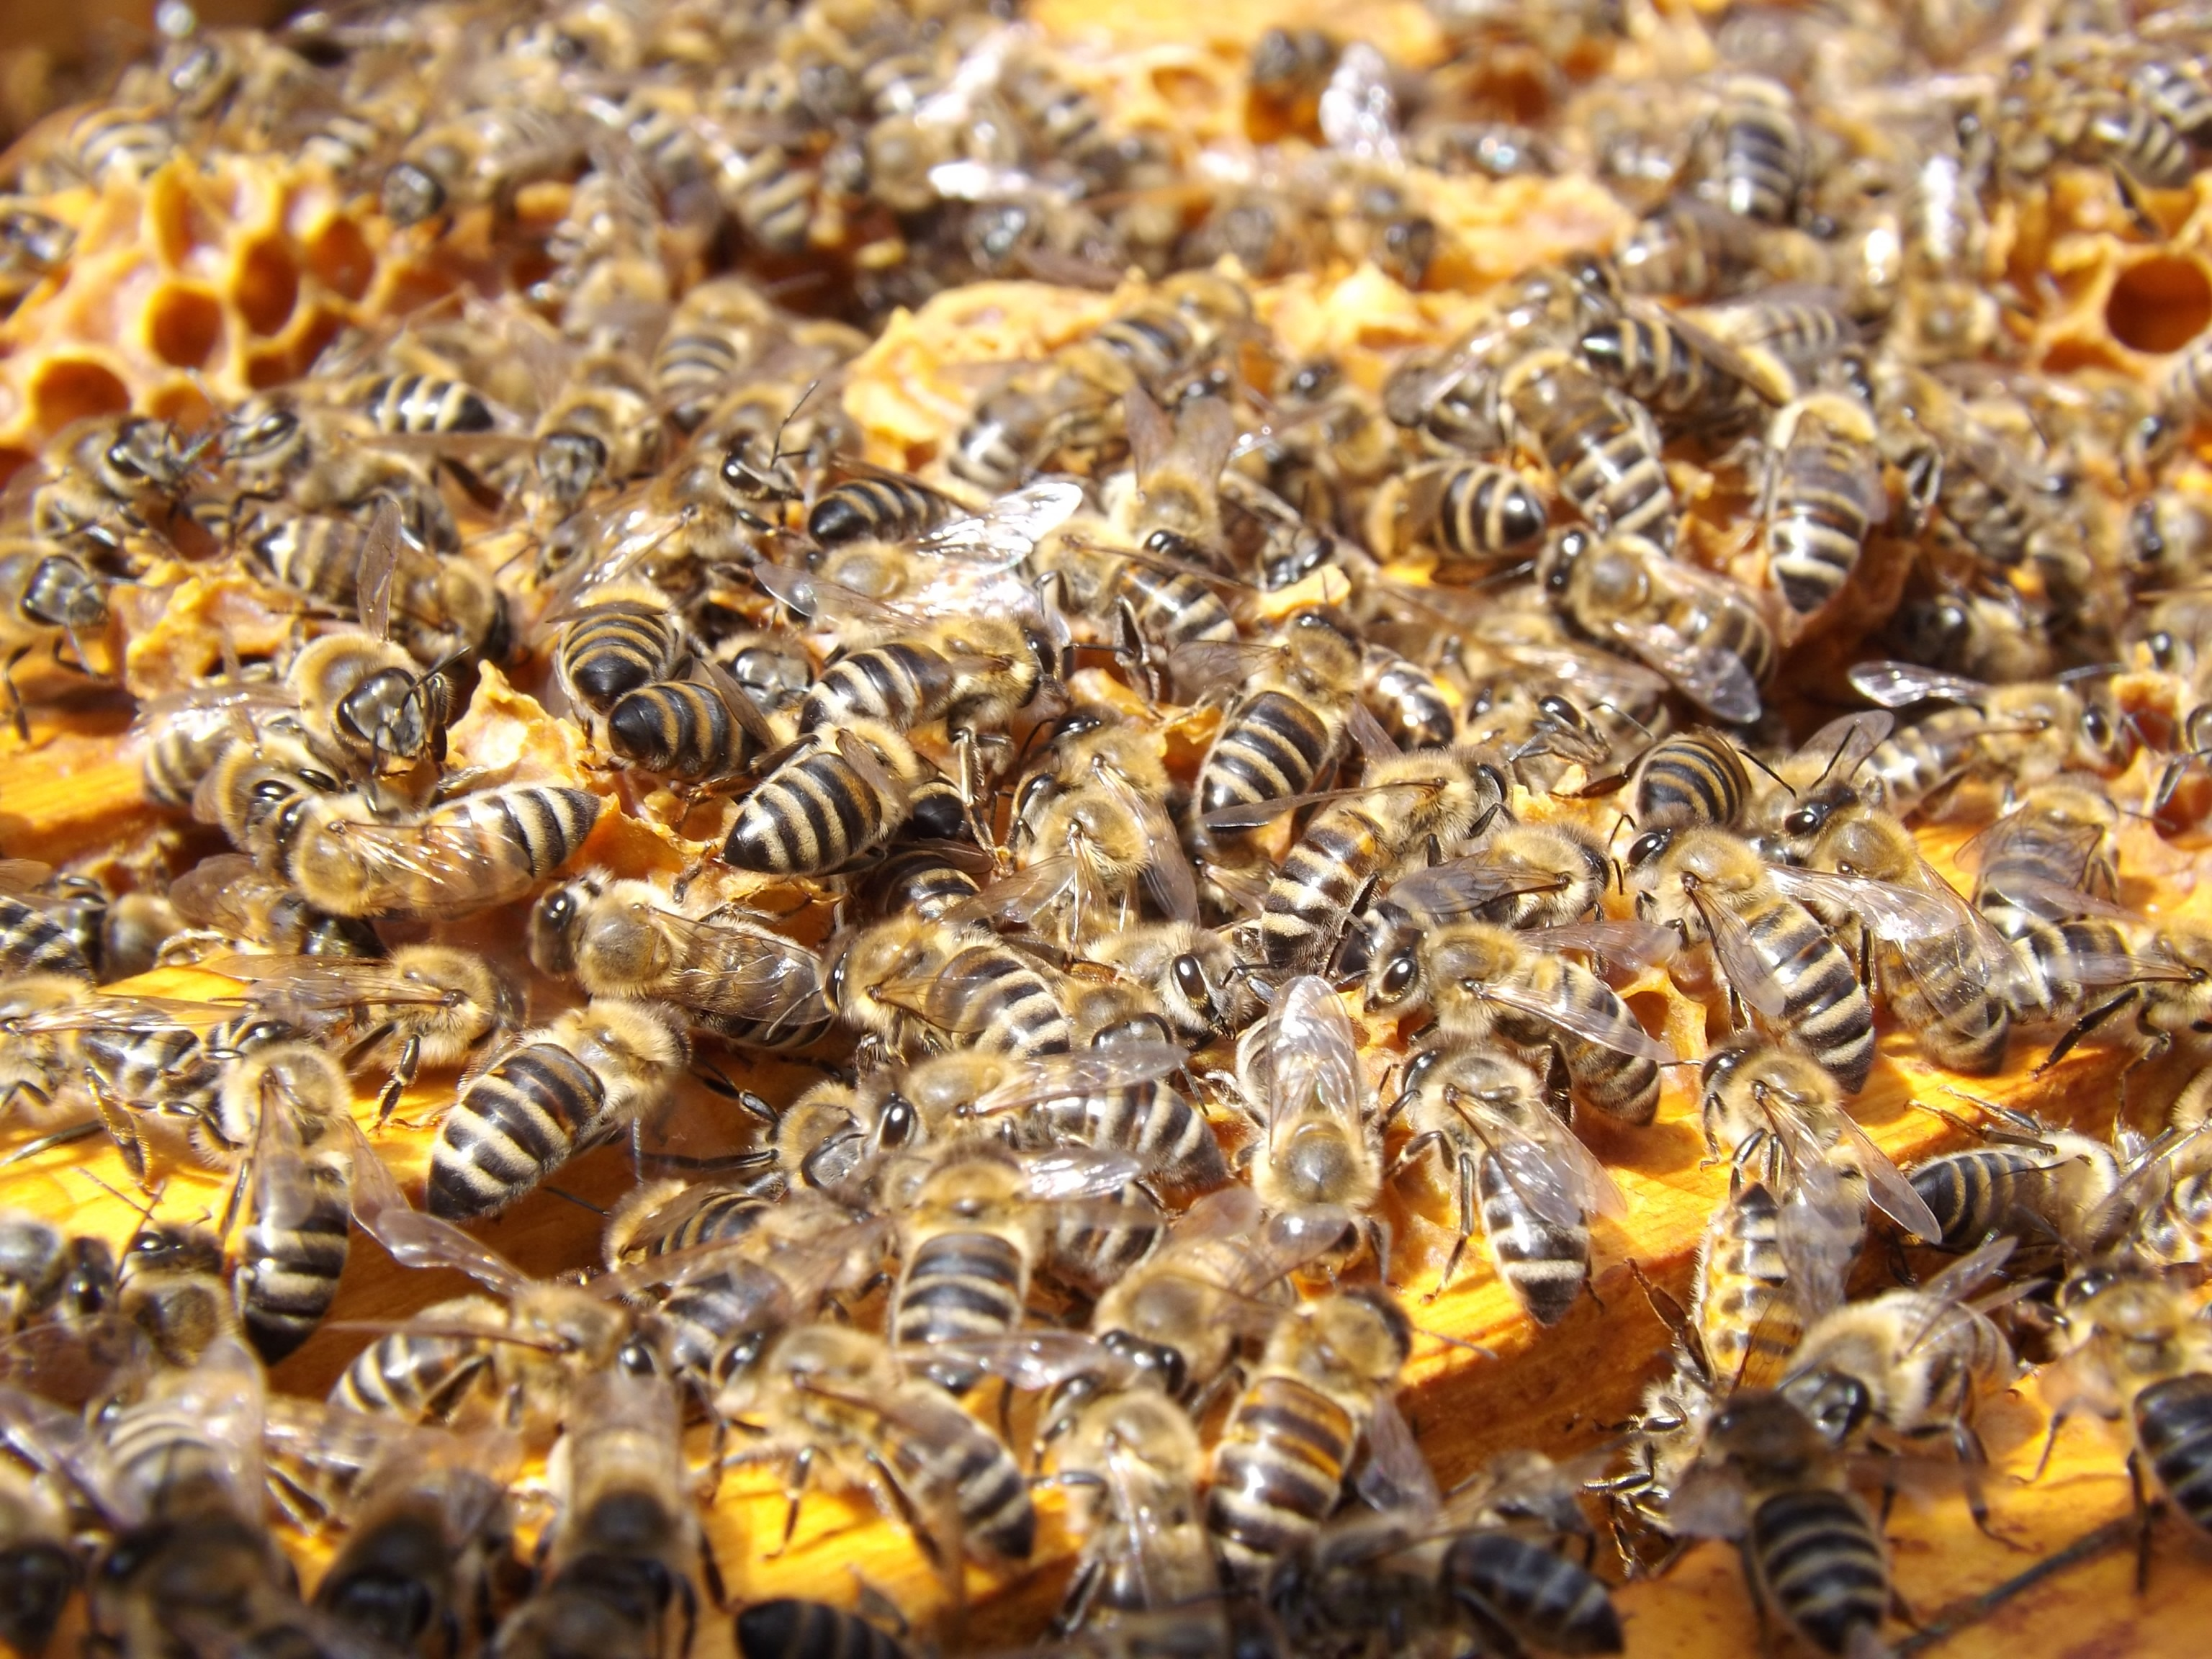 Cluster-of-busy-bees-on-honeycomb.jpeg